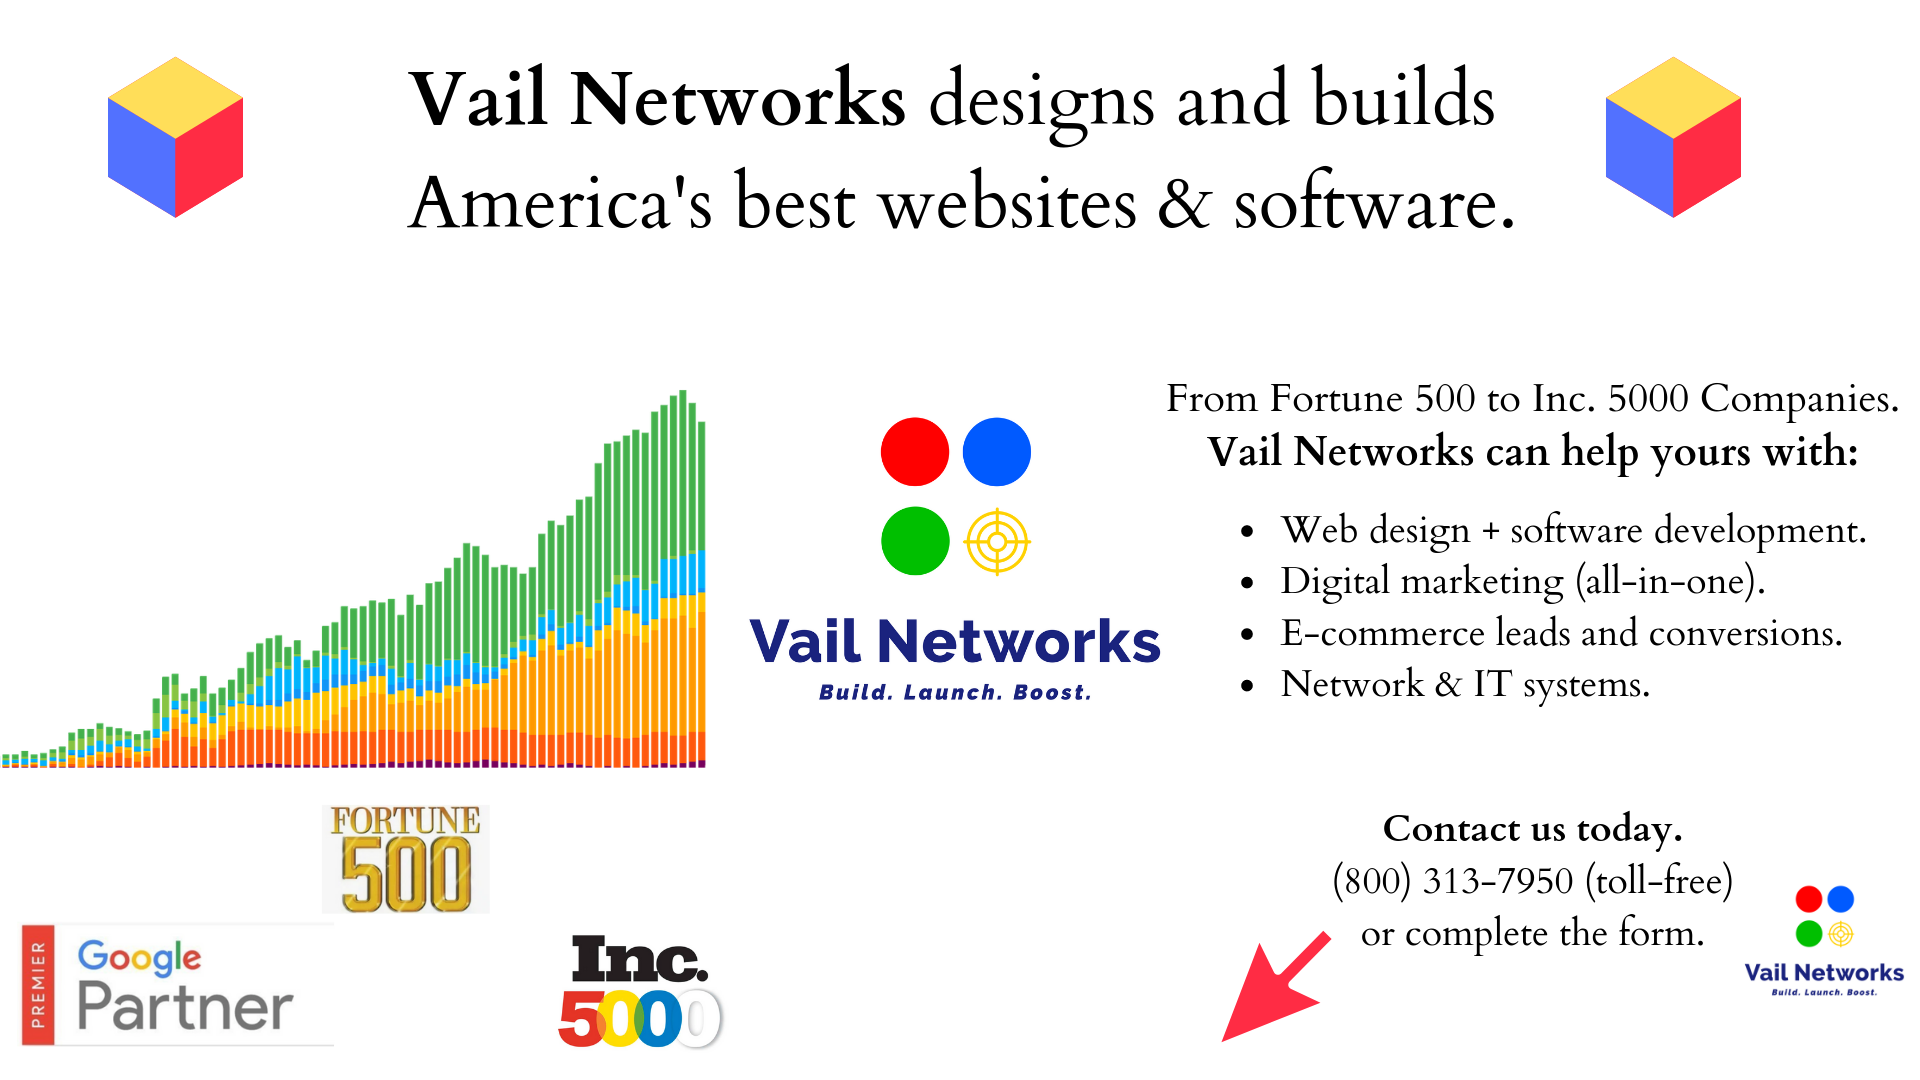 Company to help with landing pages, optimization, and lead conversions: Vailnetworks.com